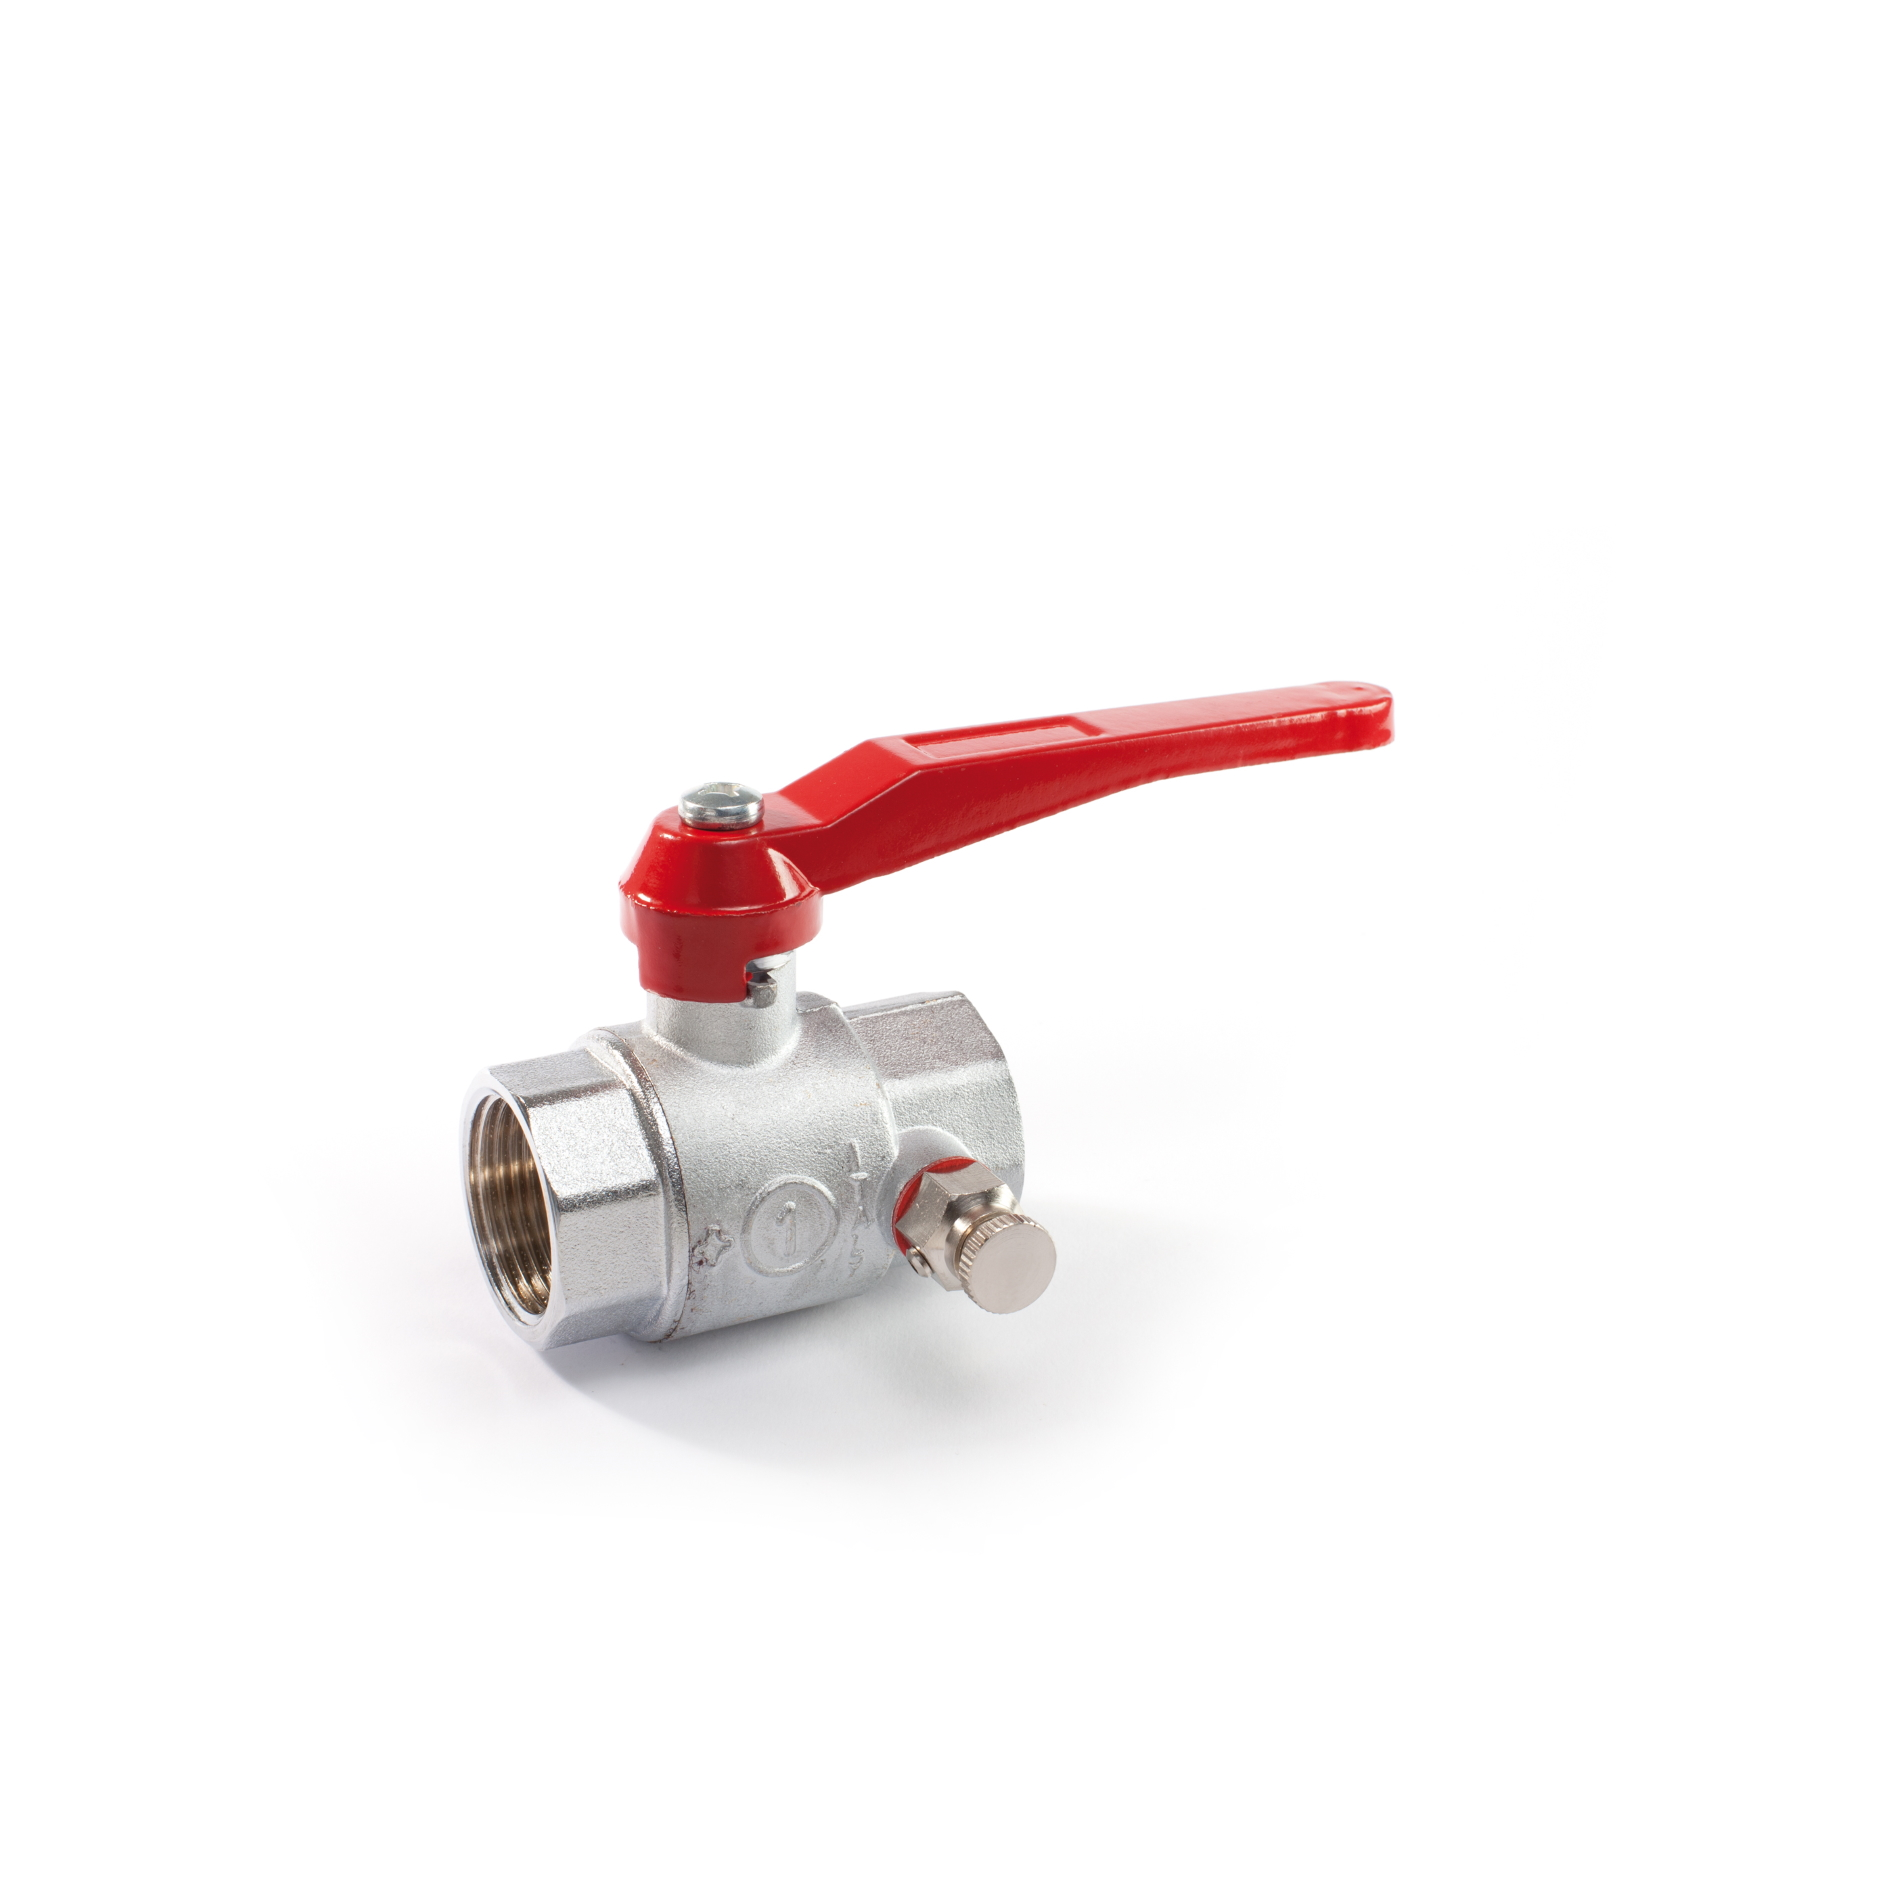 065 Valvola a sfera a passaggio totale tappo e valvolina di sfiato leva Brass ball valves normal type FxF plug and air vent lever